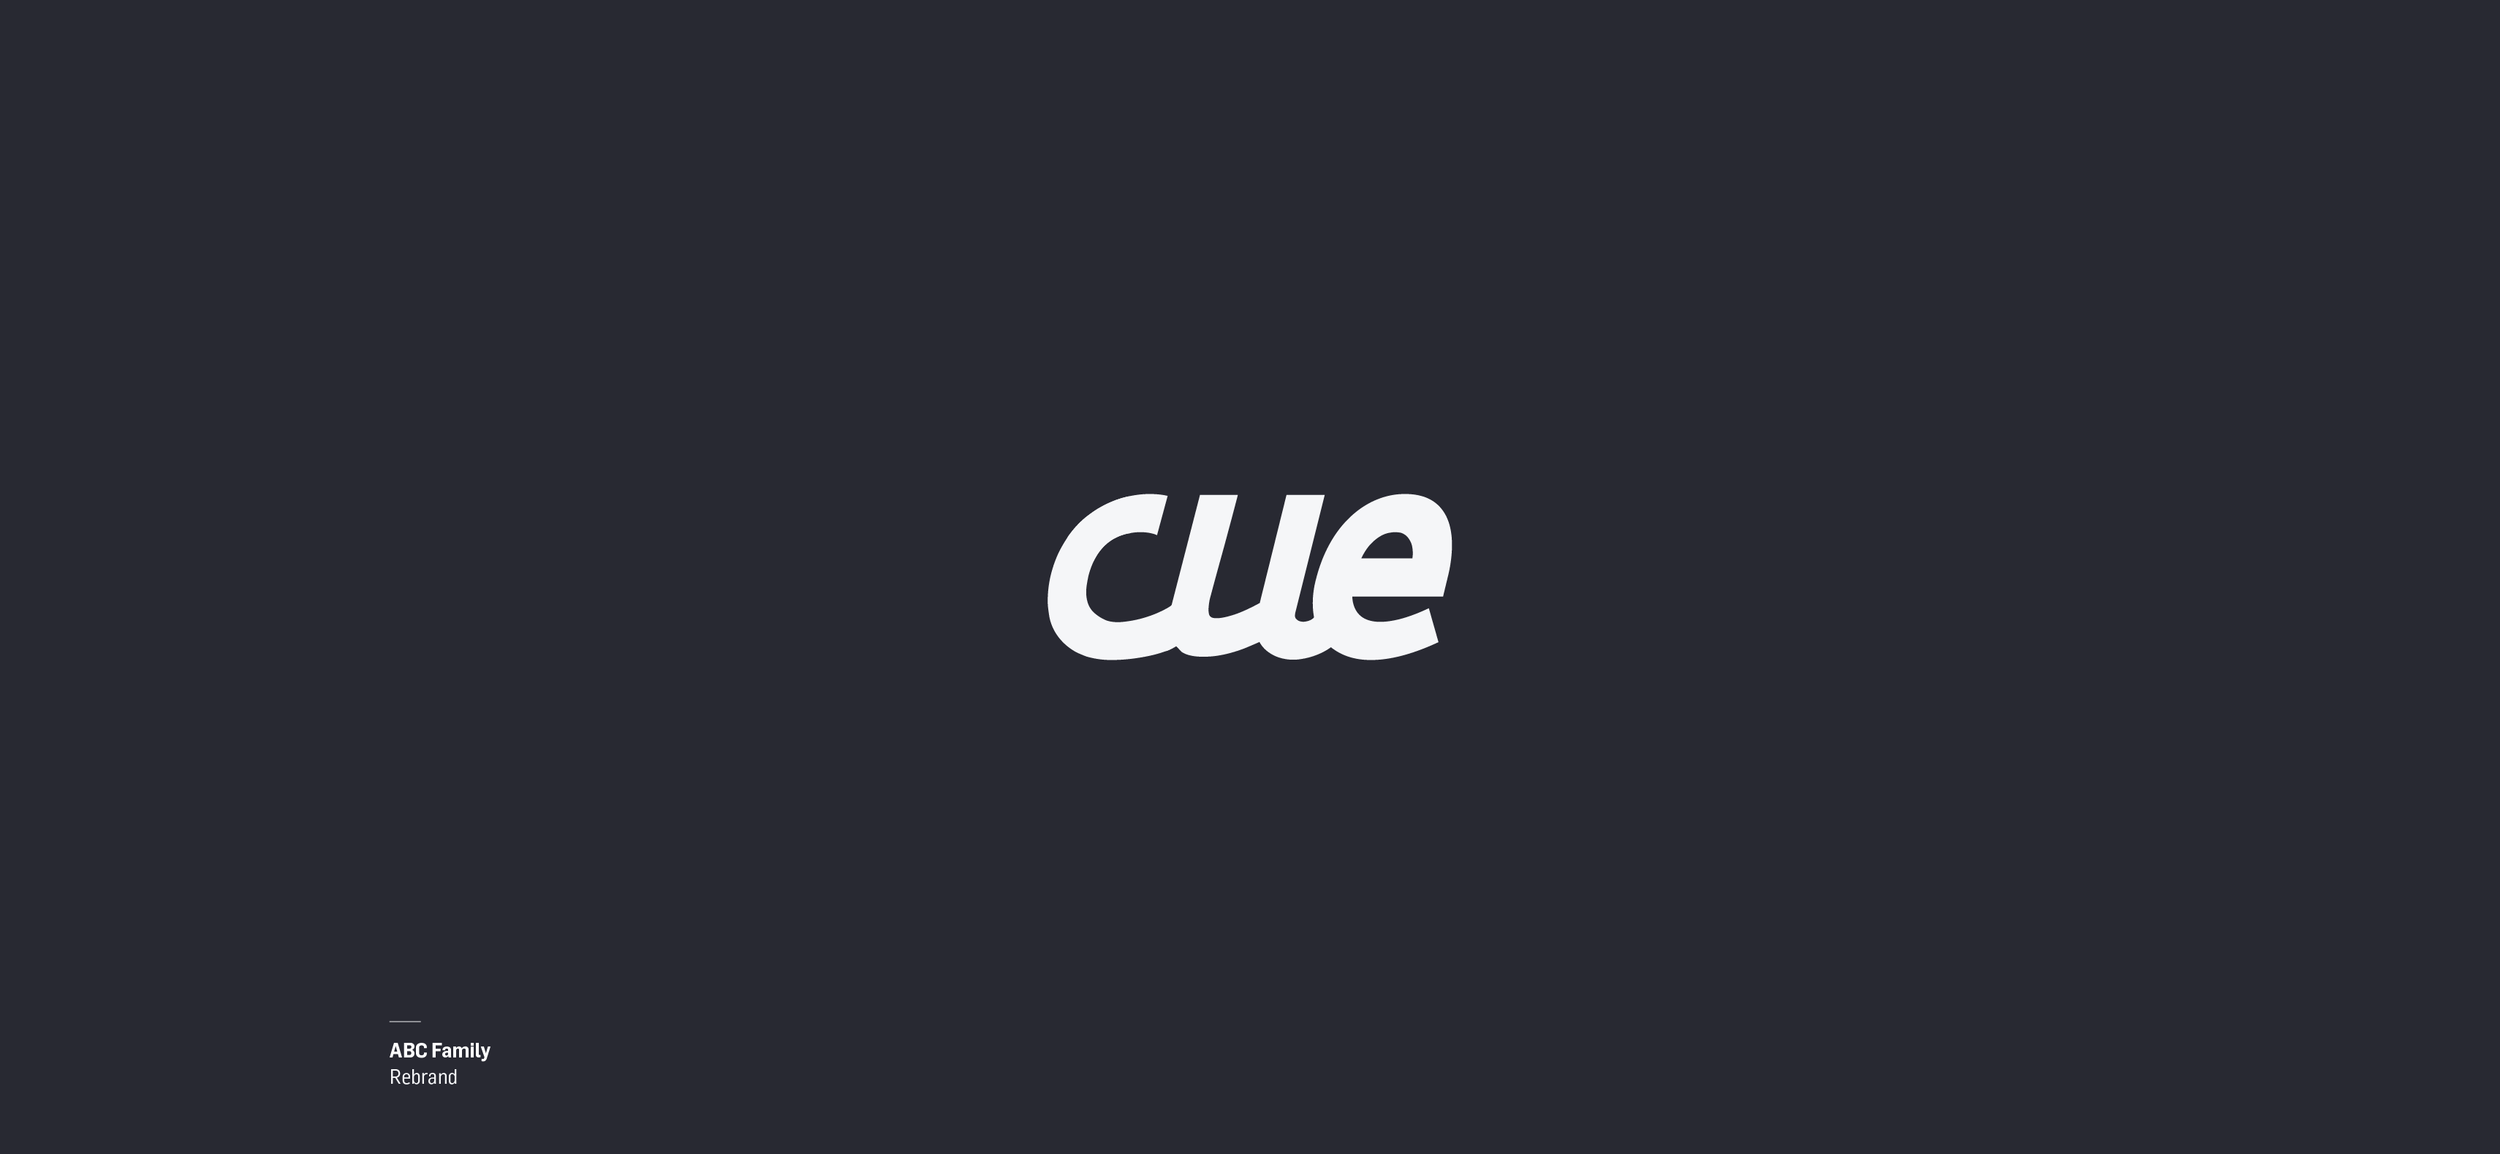 04_abc_cue-01.png